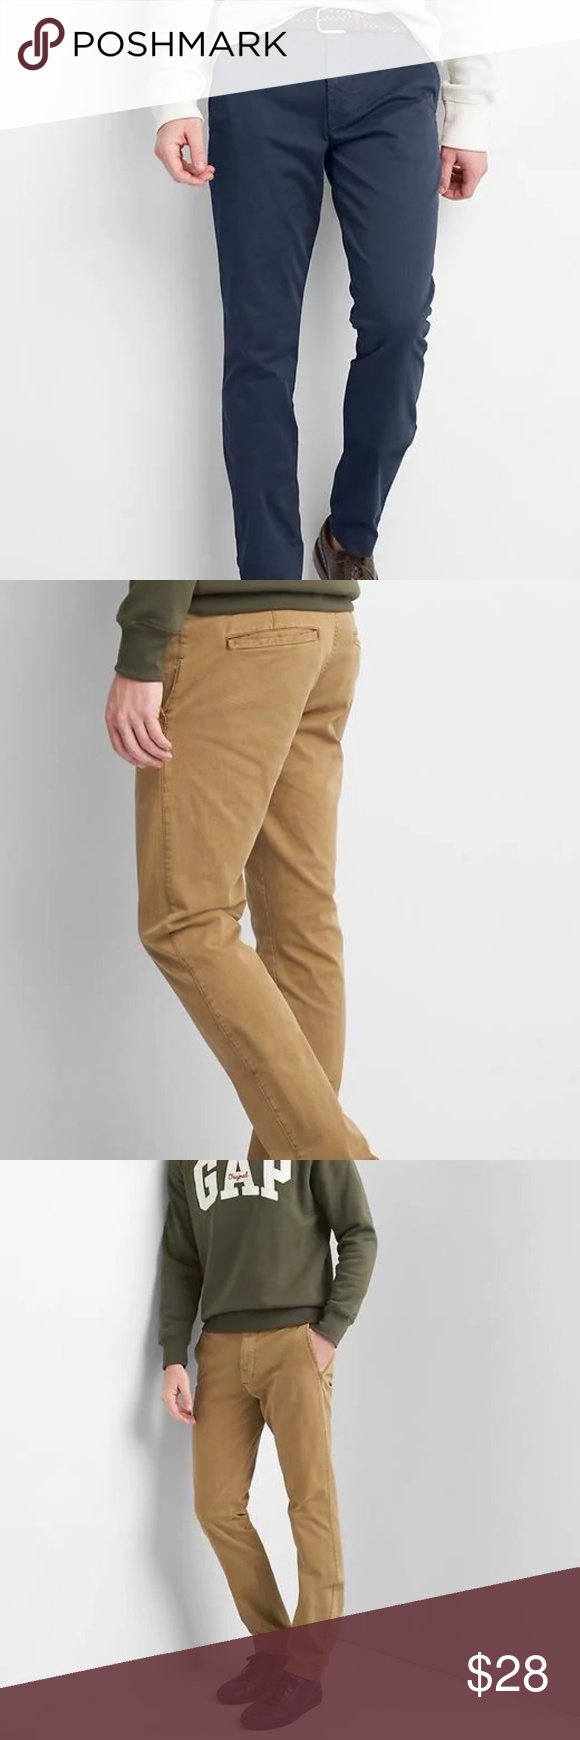 what colors to wash khakis with